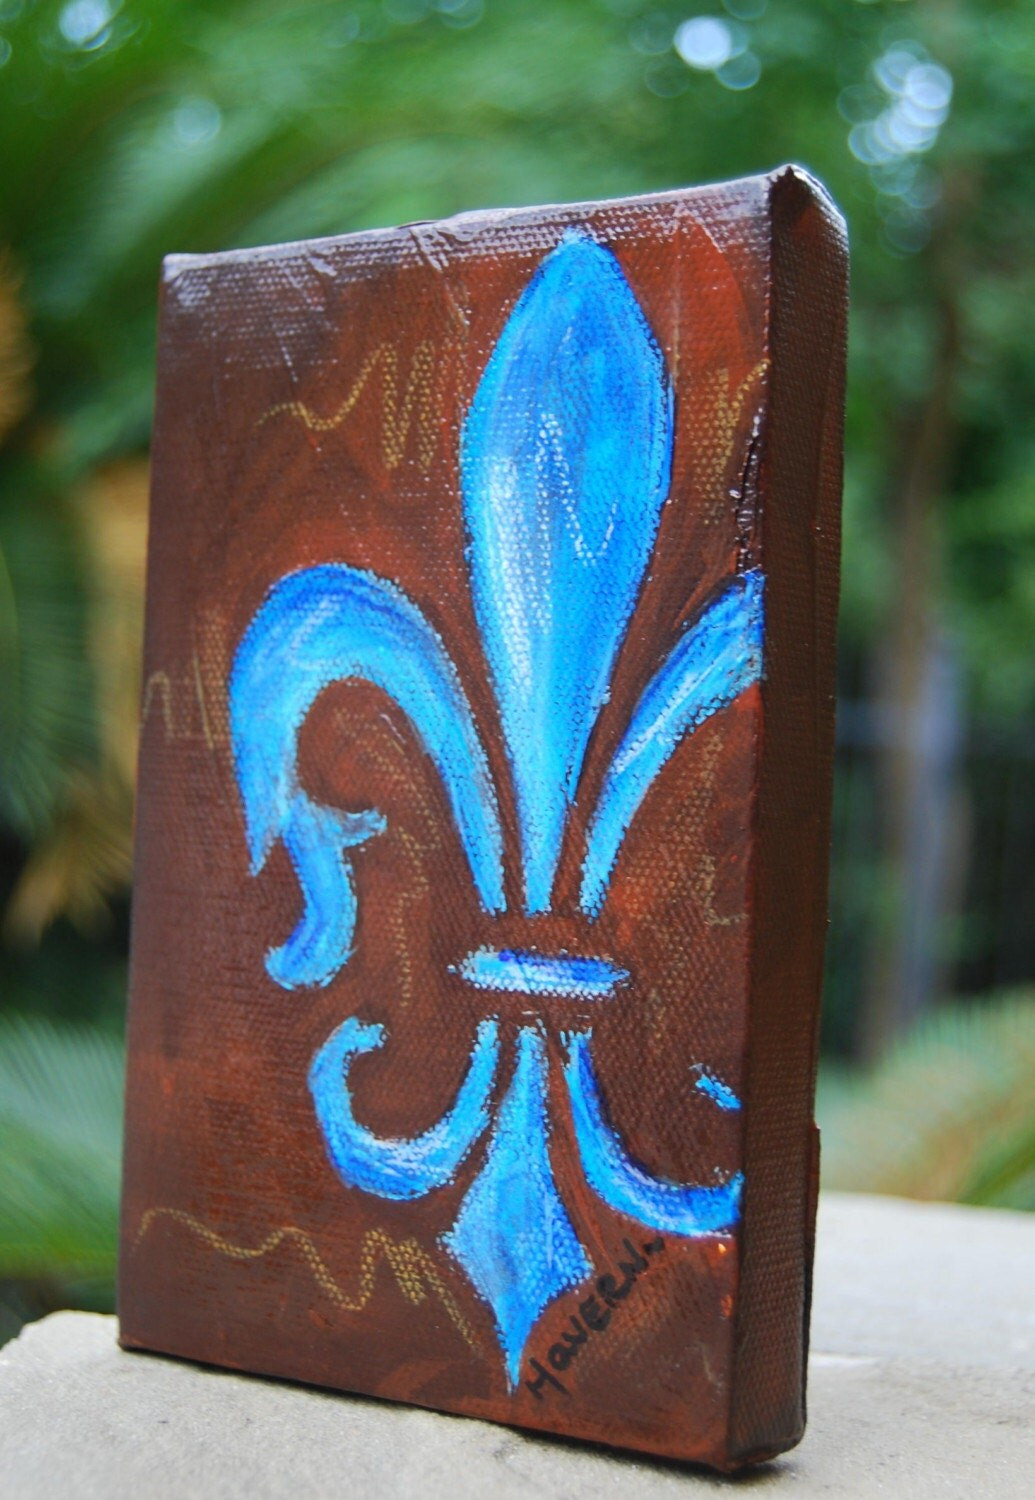 Fleur de lis original small painting by haveart on etsy - Fleur paint ...